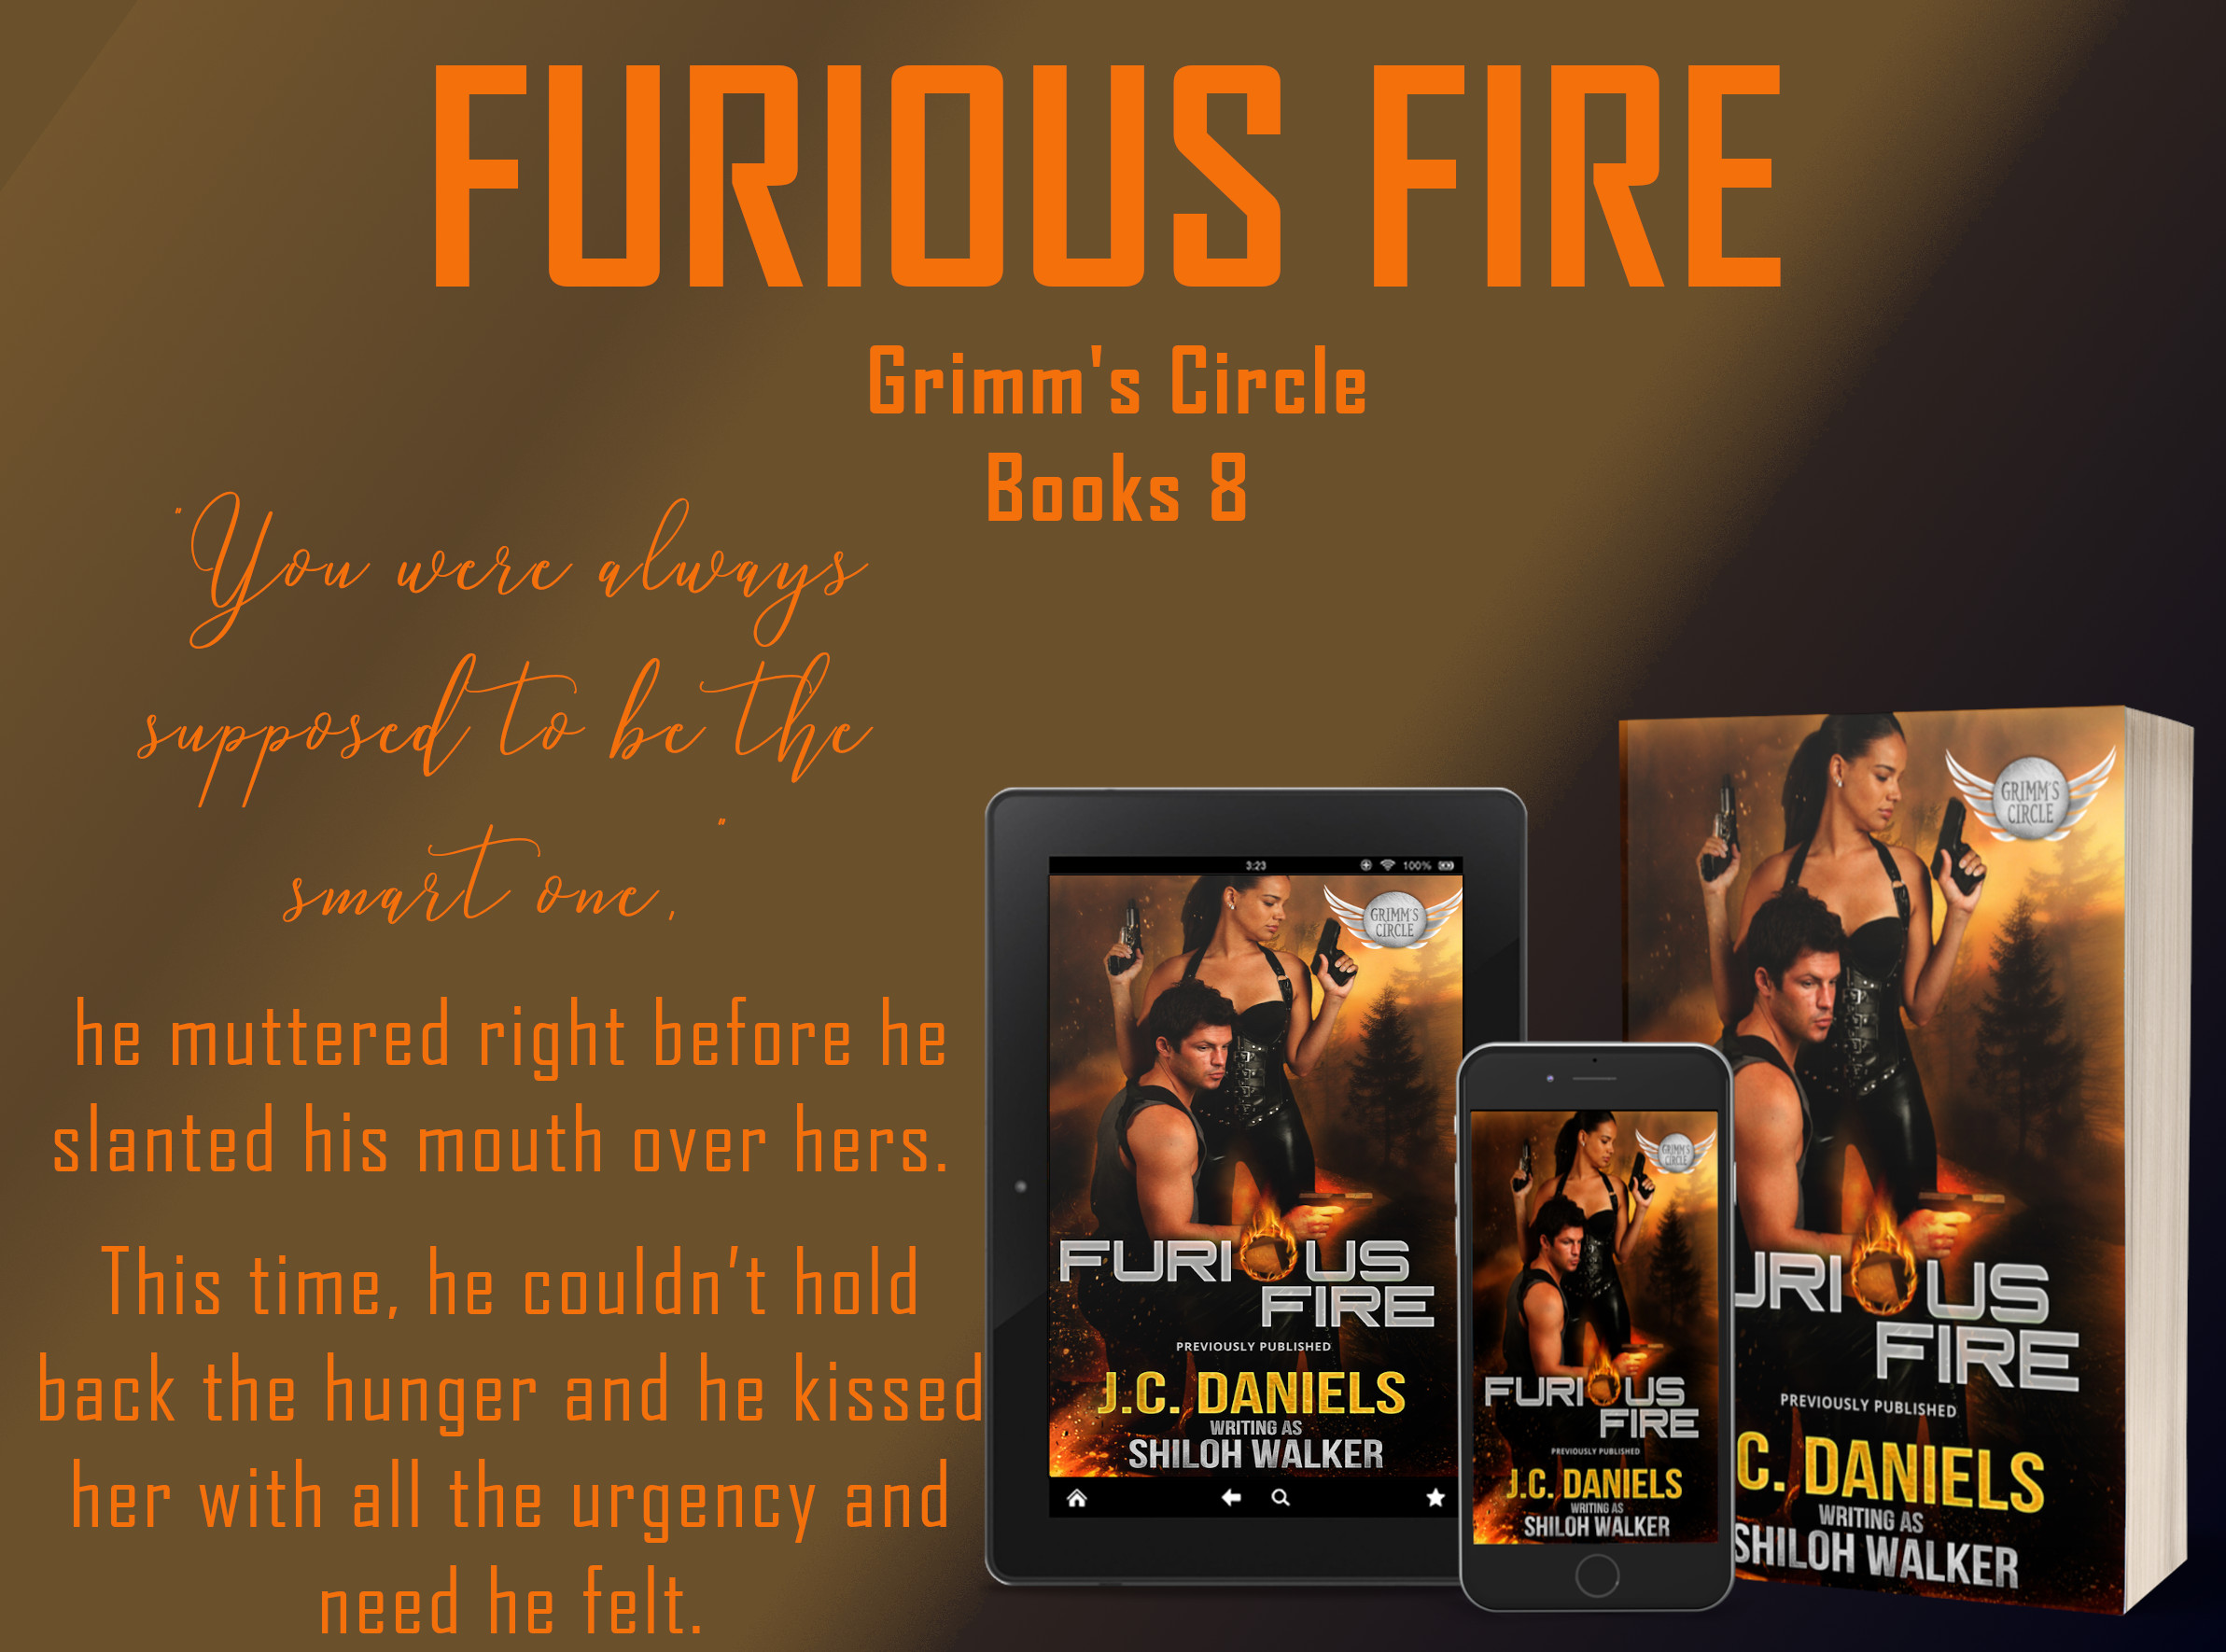 furious fire promo graphic, fairy tale retellings